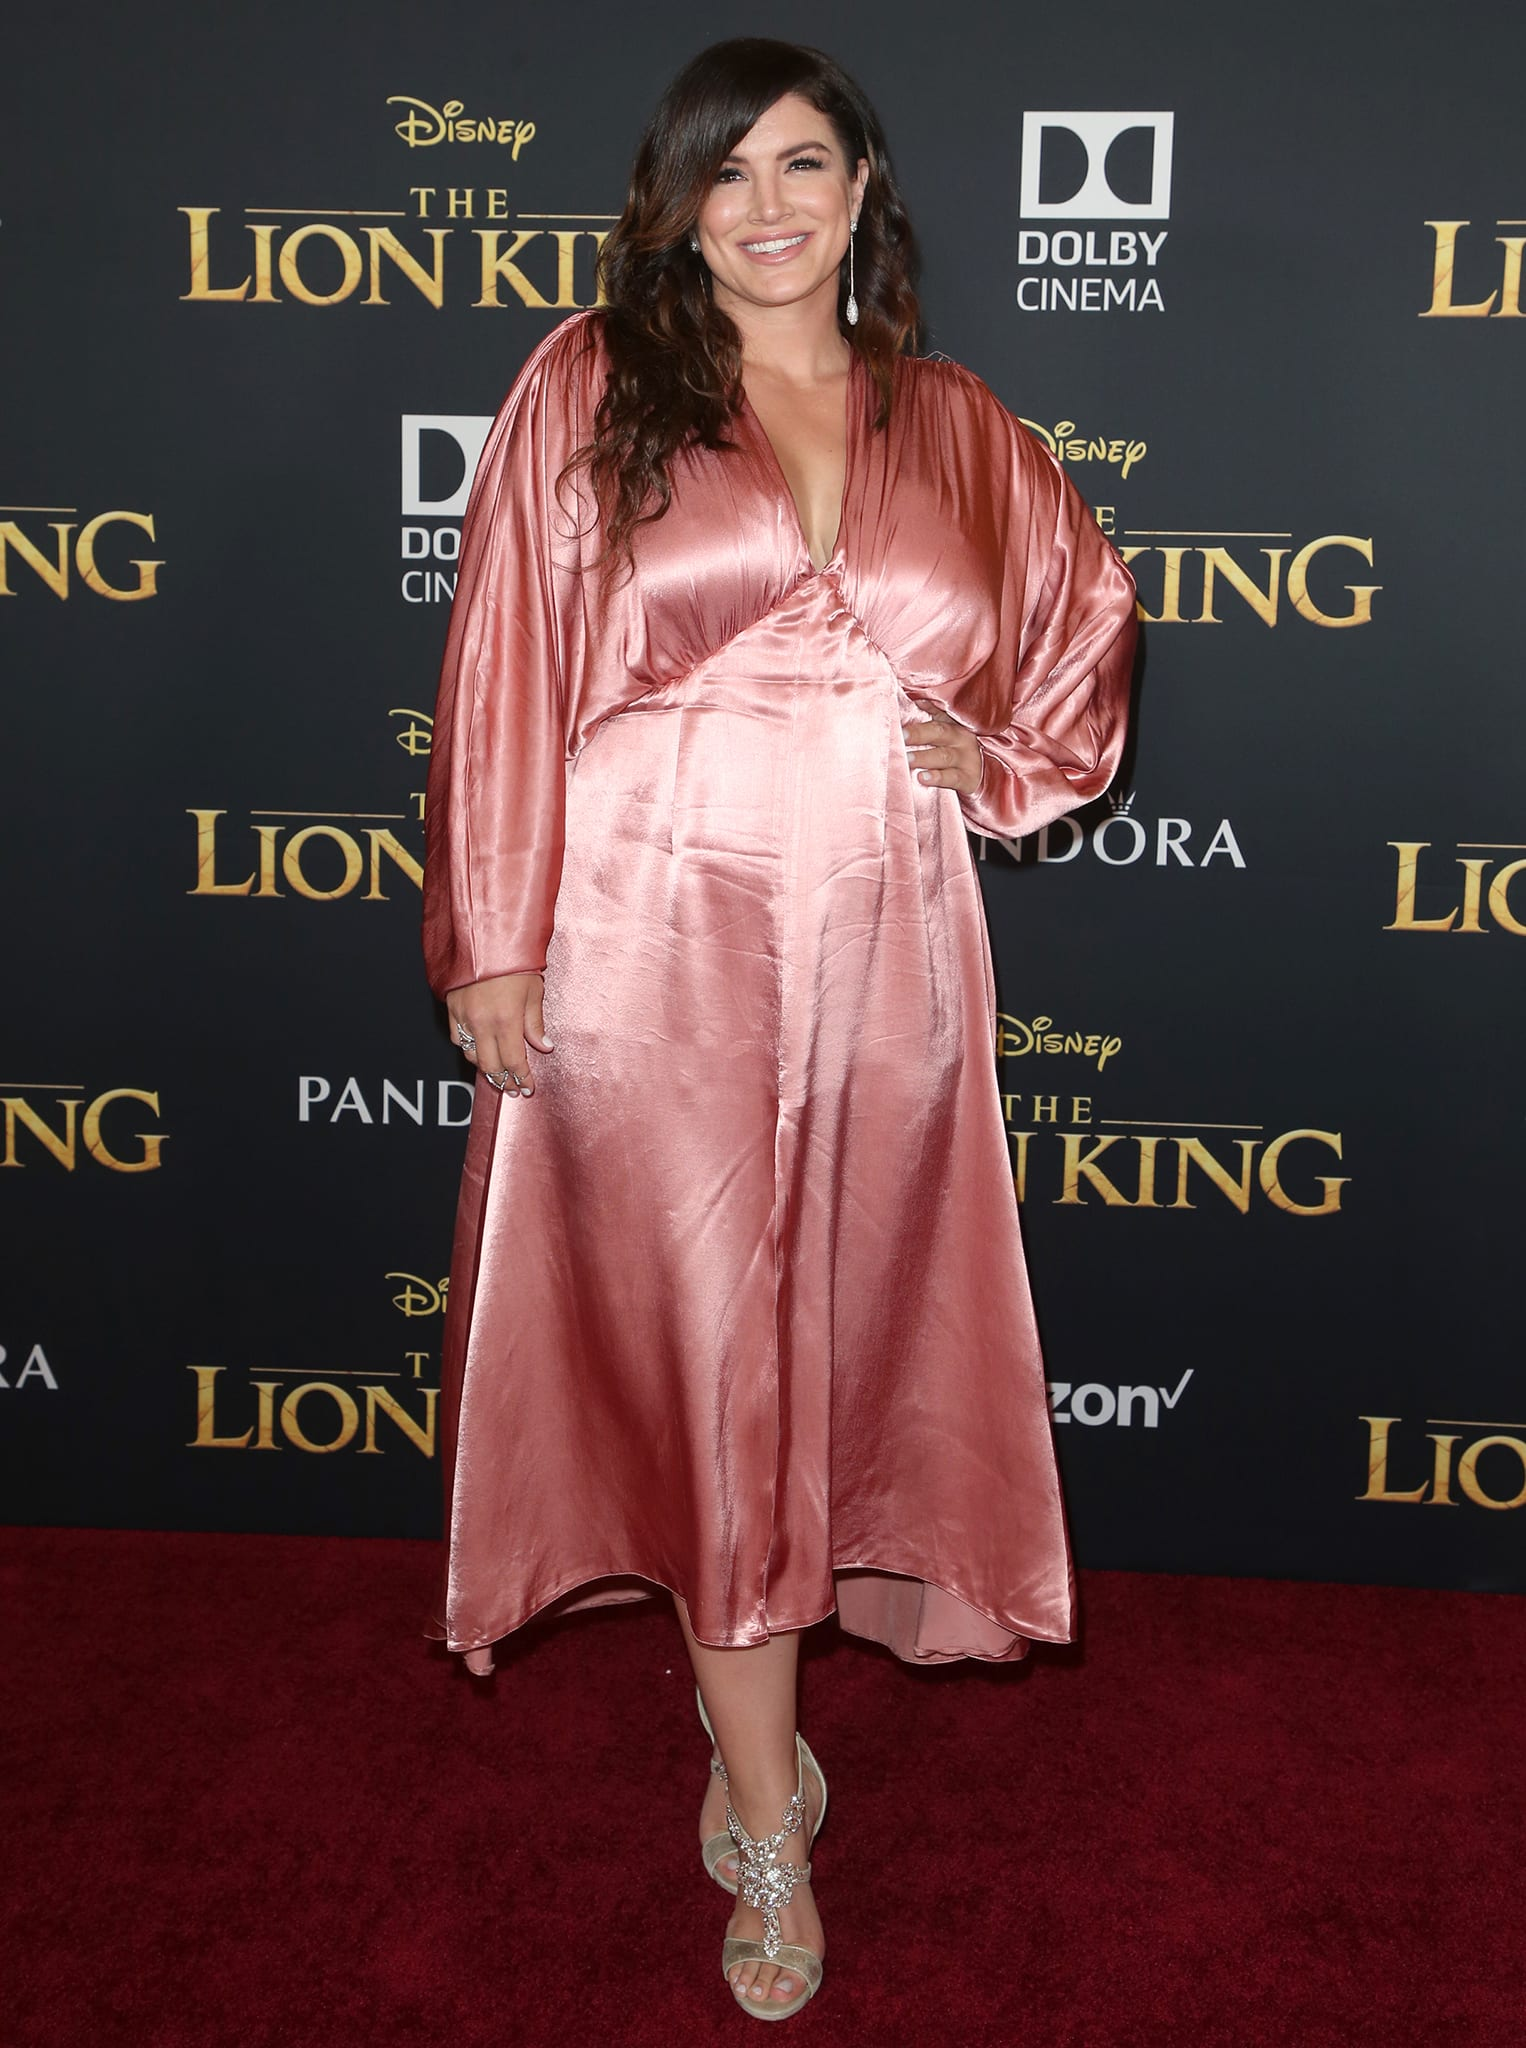 Gina Carano at the premiere of Disney's Lion King on July 10, 2019